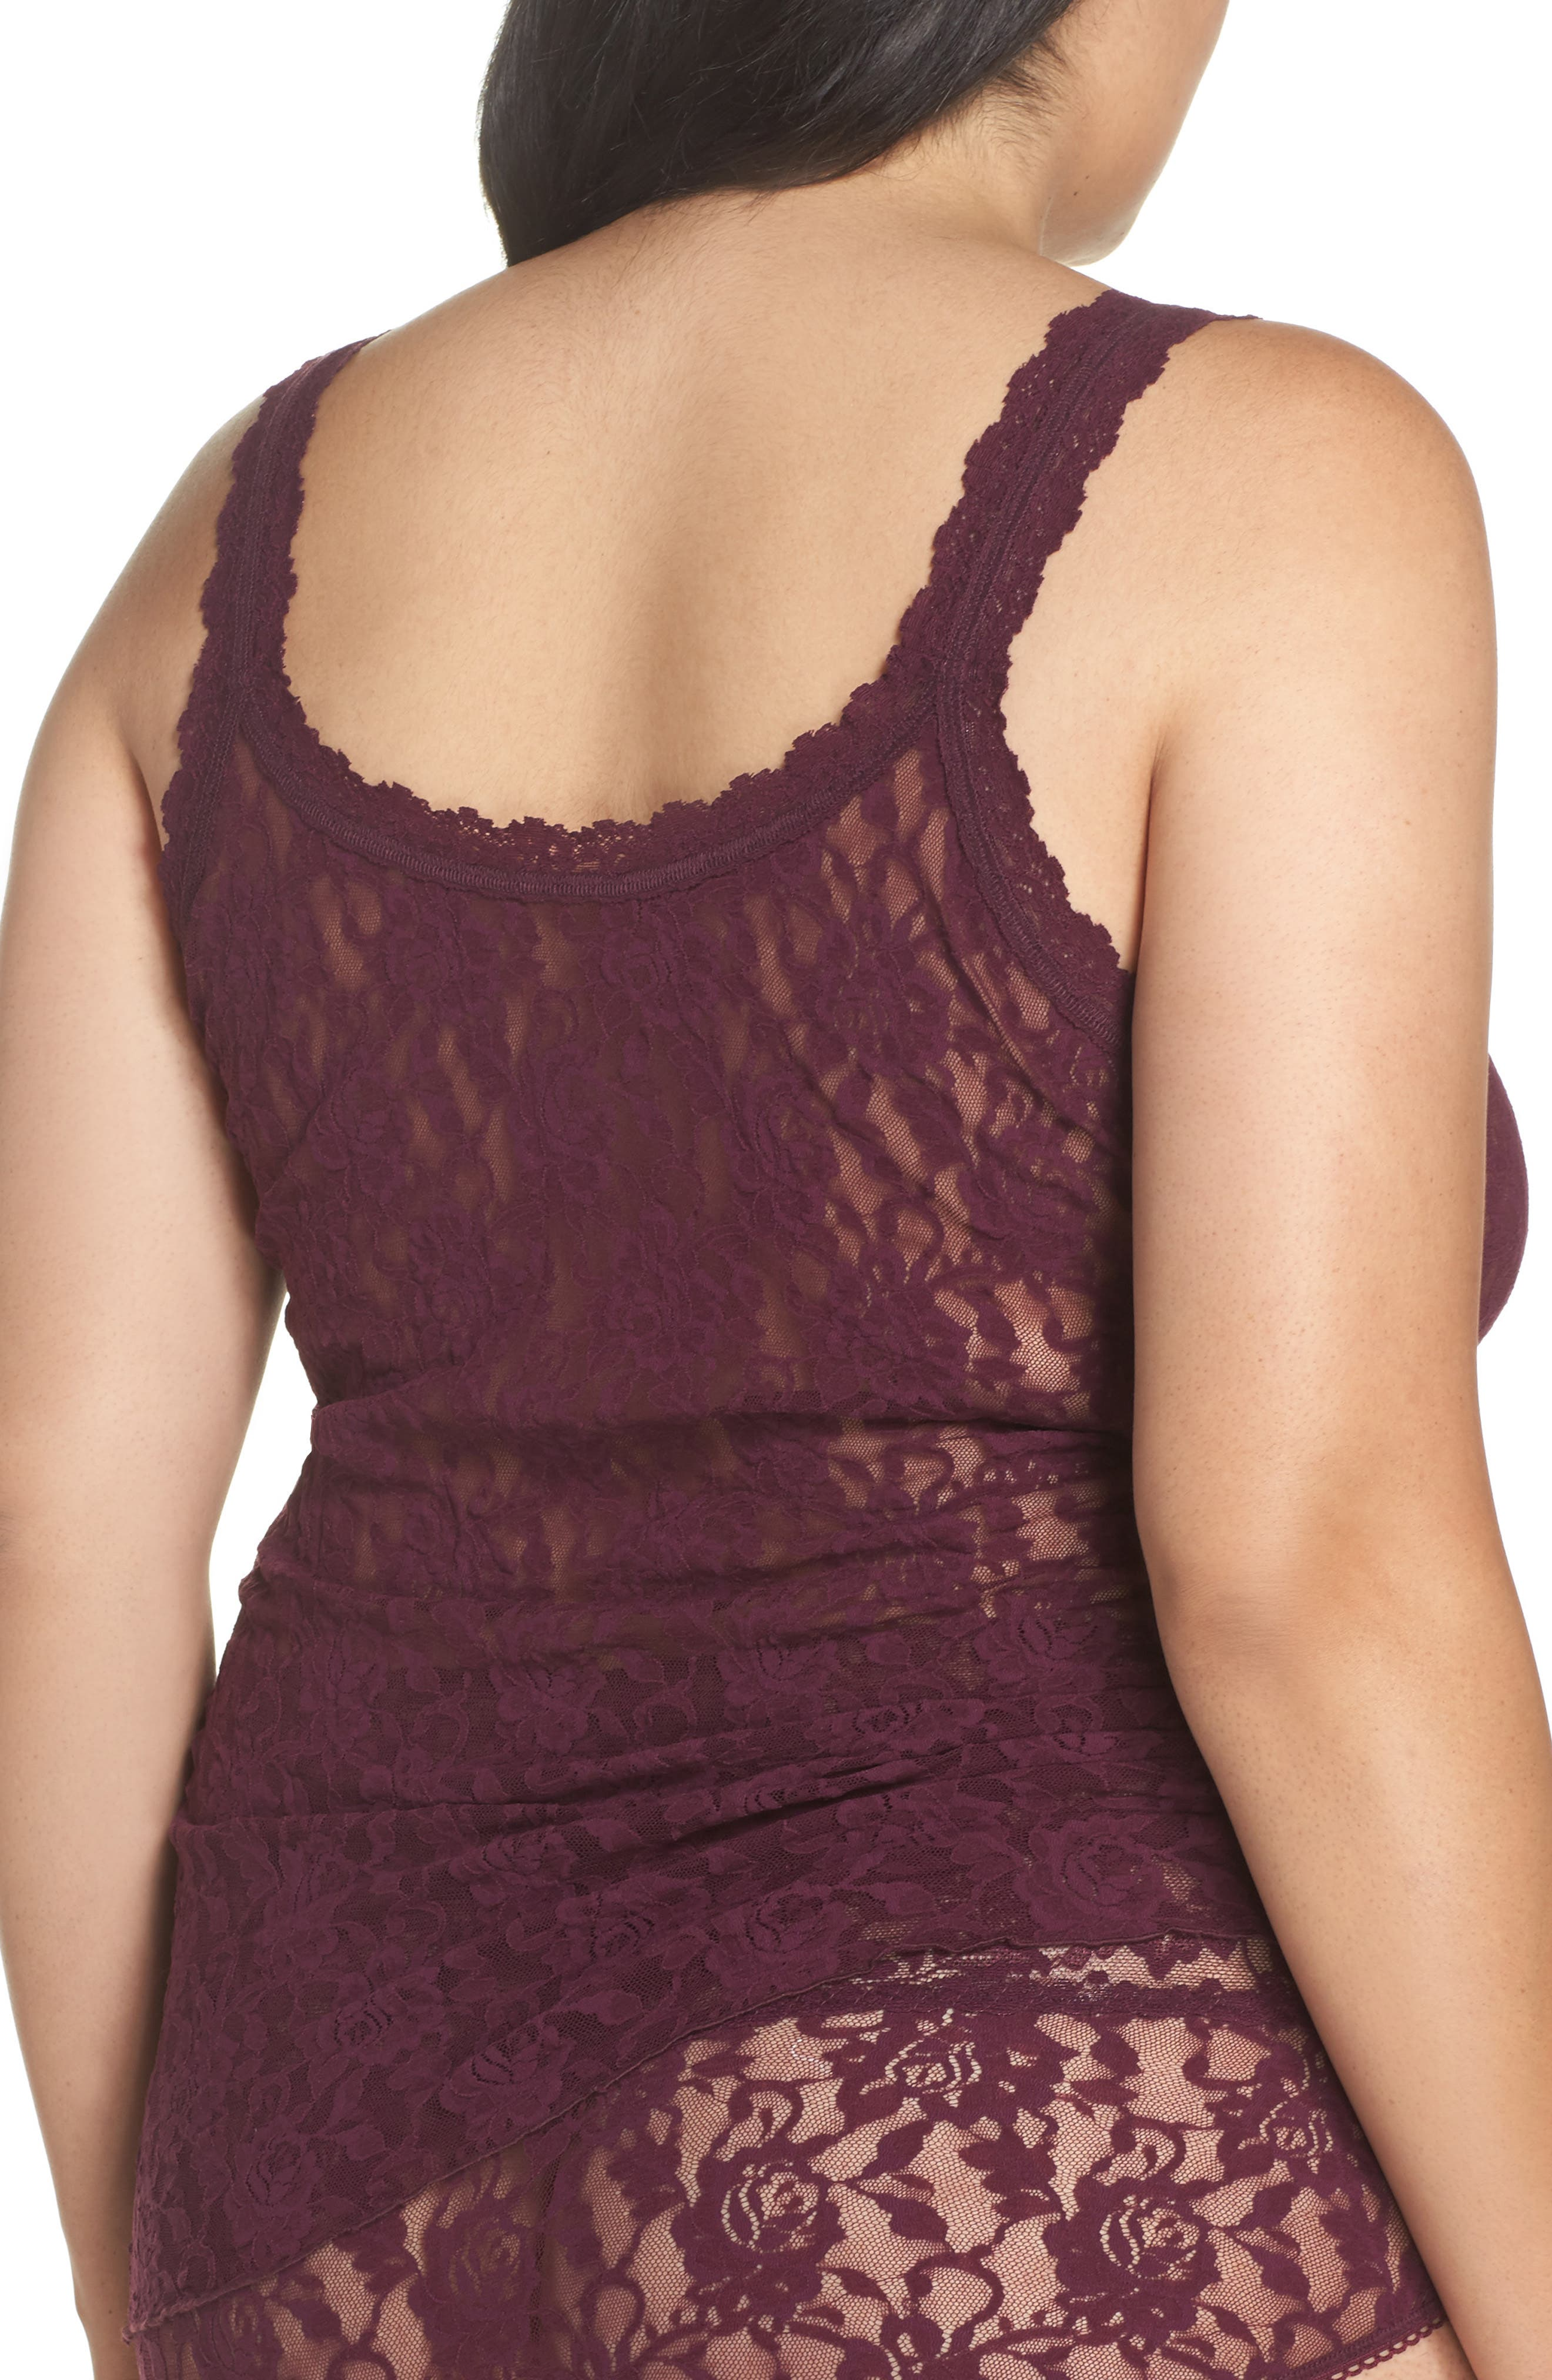 Alternate Image 2  - Hanky Panky 'Signature' Lace Camisole (Plus Size)